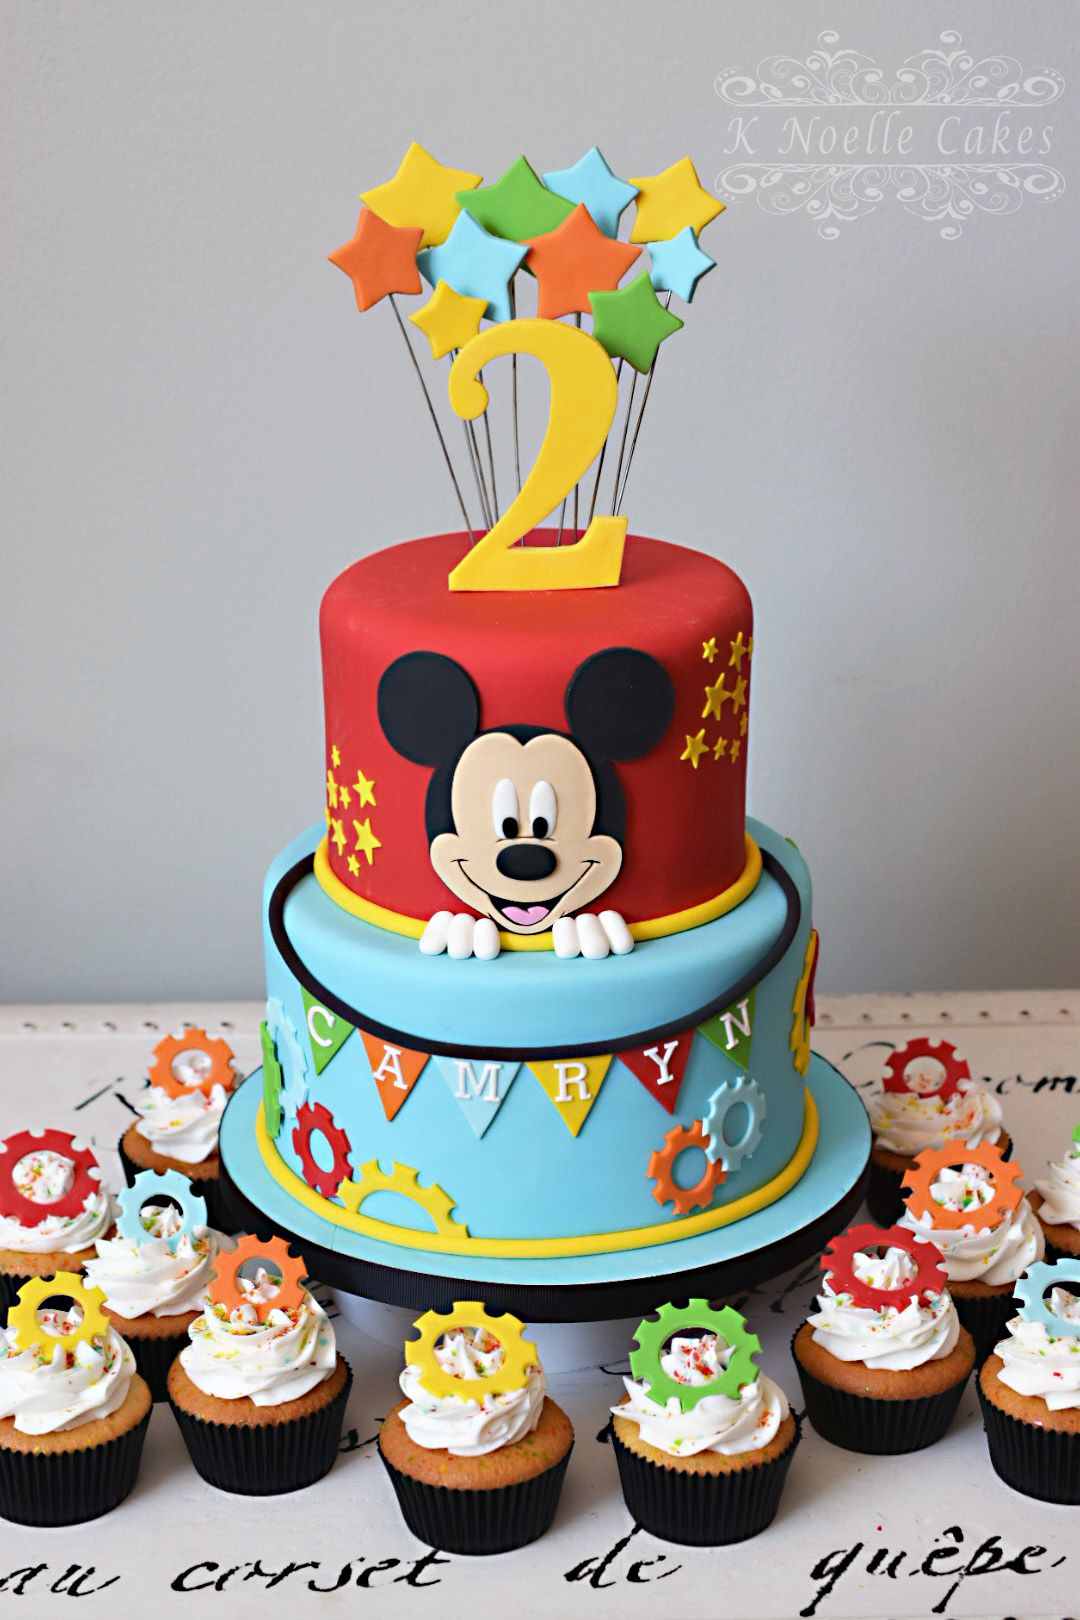 Mickey Mouse Birthday Cakes Mickey Mouse Clubhouse Theme Cake K Noelle Cakes Cakes K